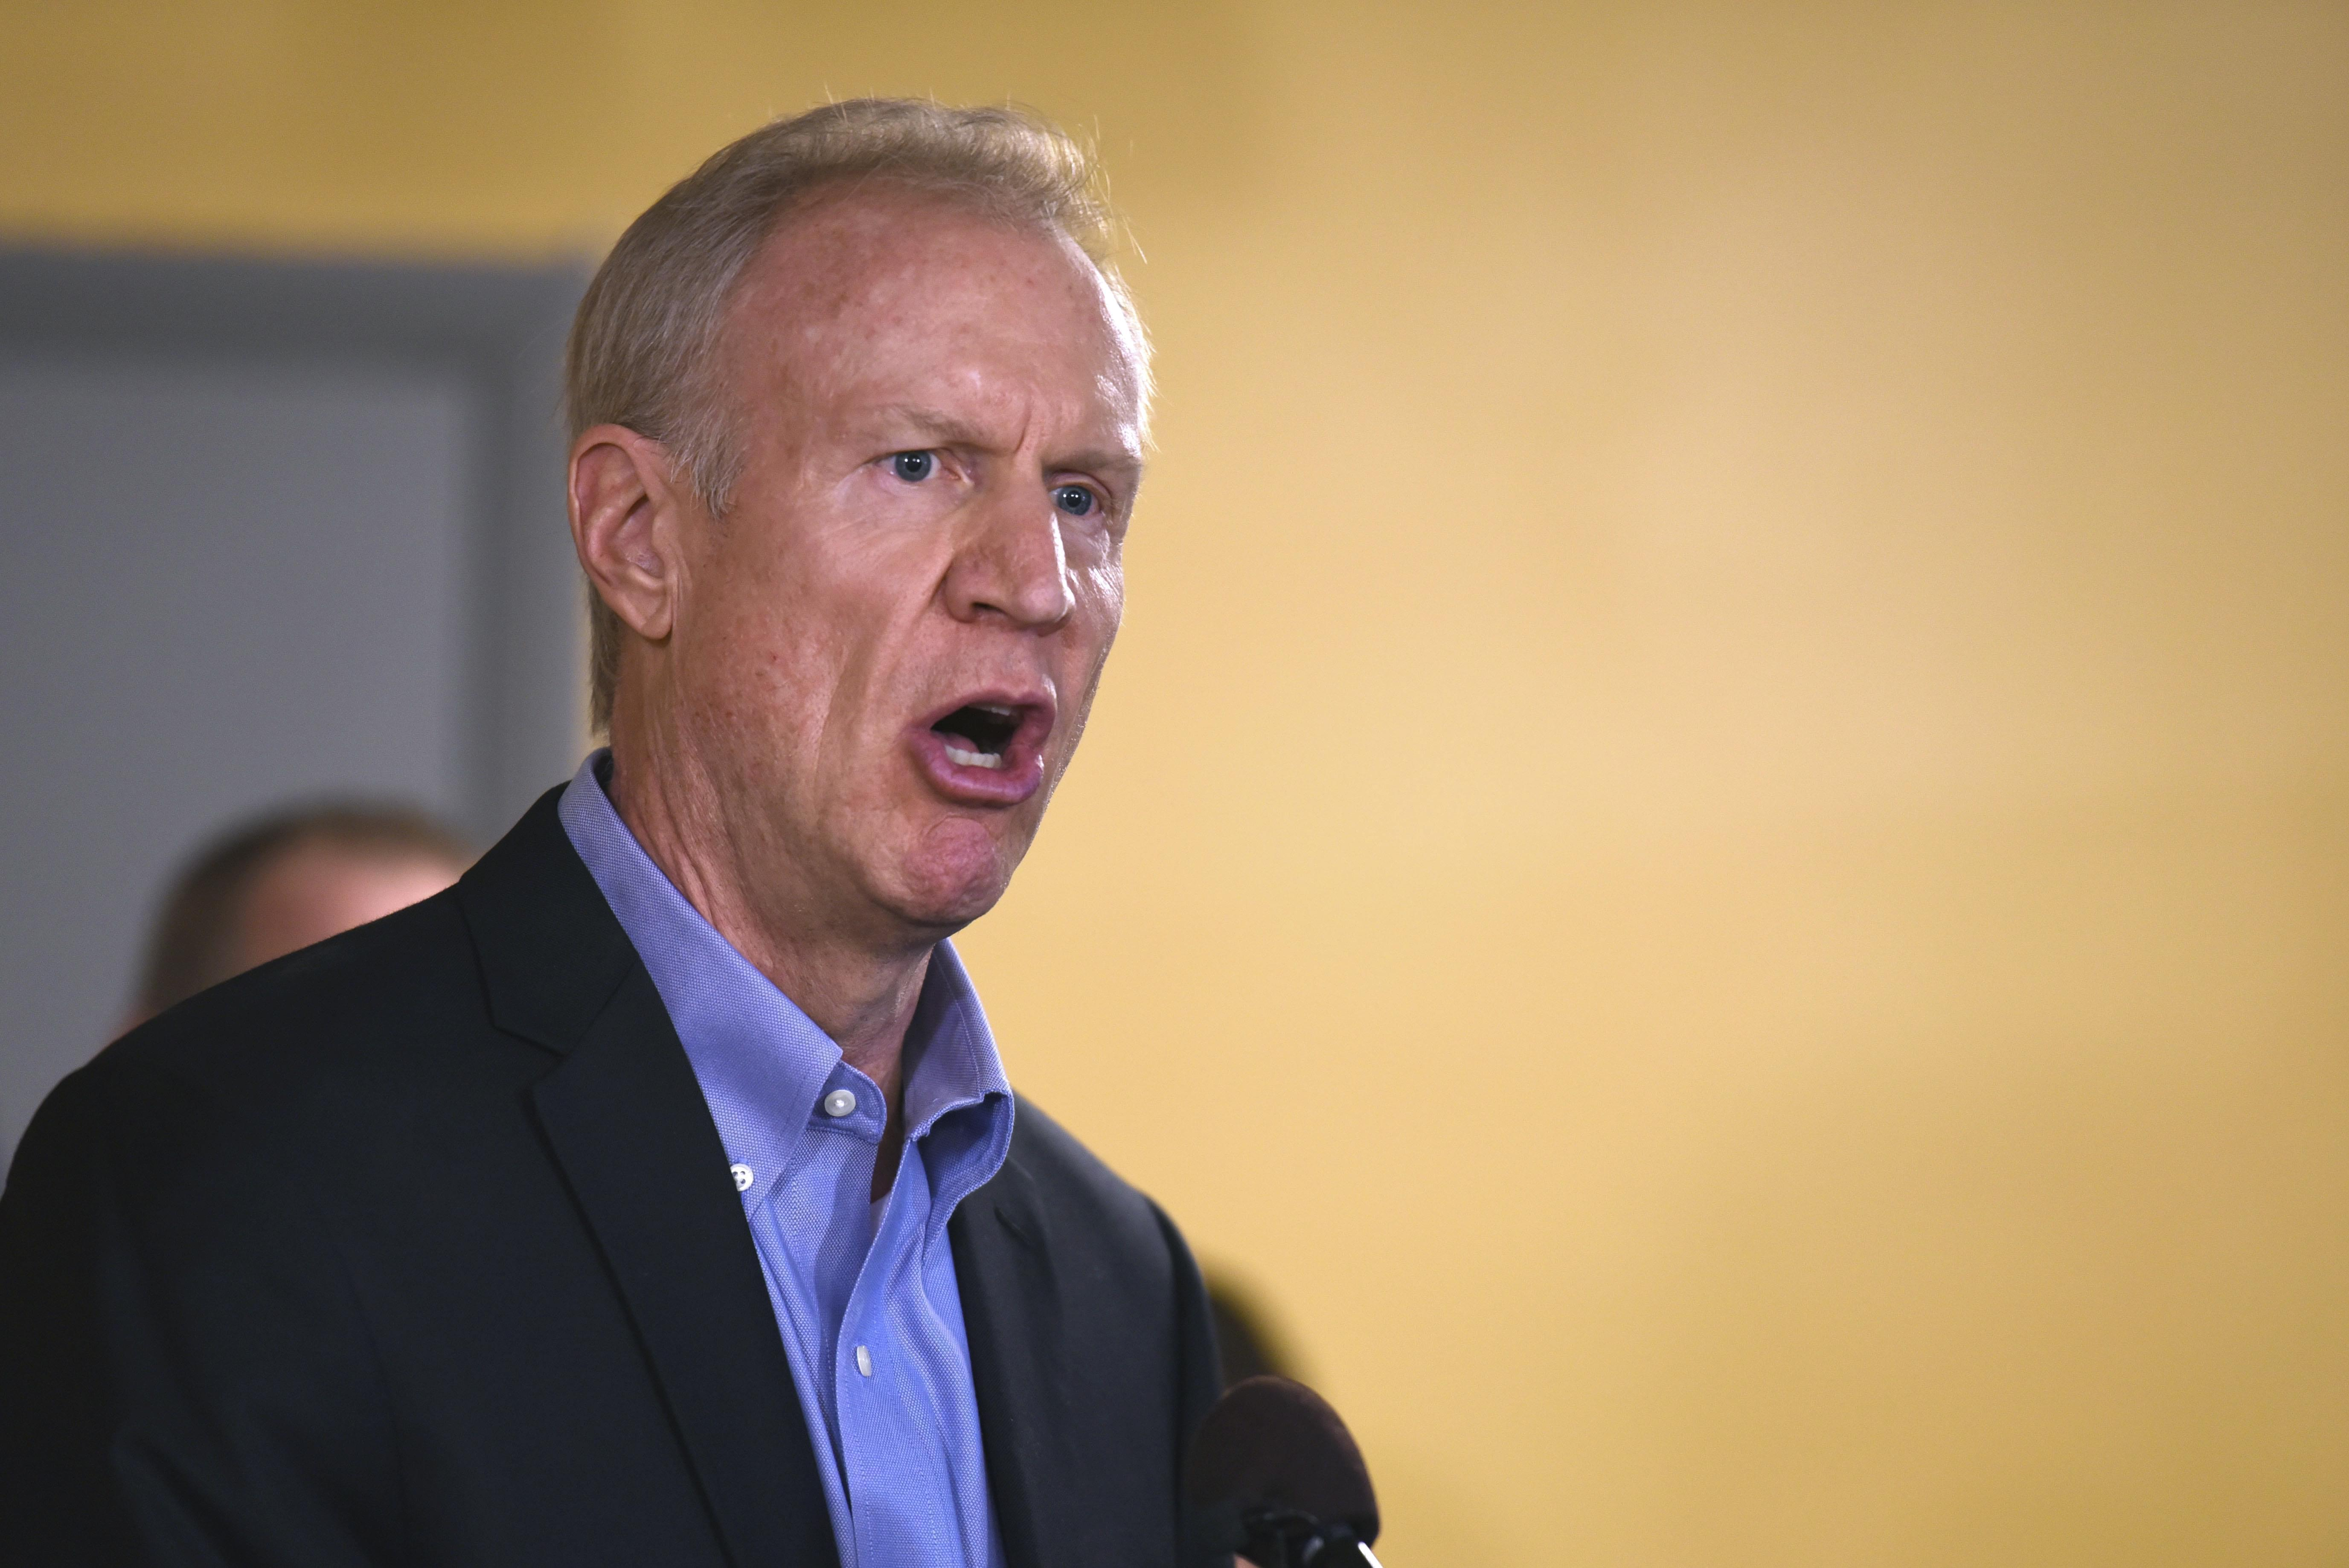 Gov. Bruce Rauner speaks during a news conference on July 5, 2017 in Chicago.